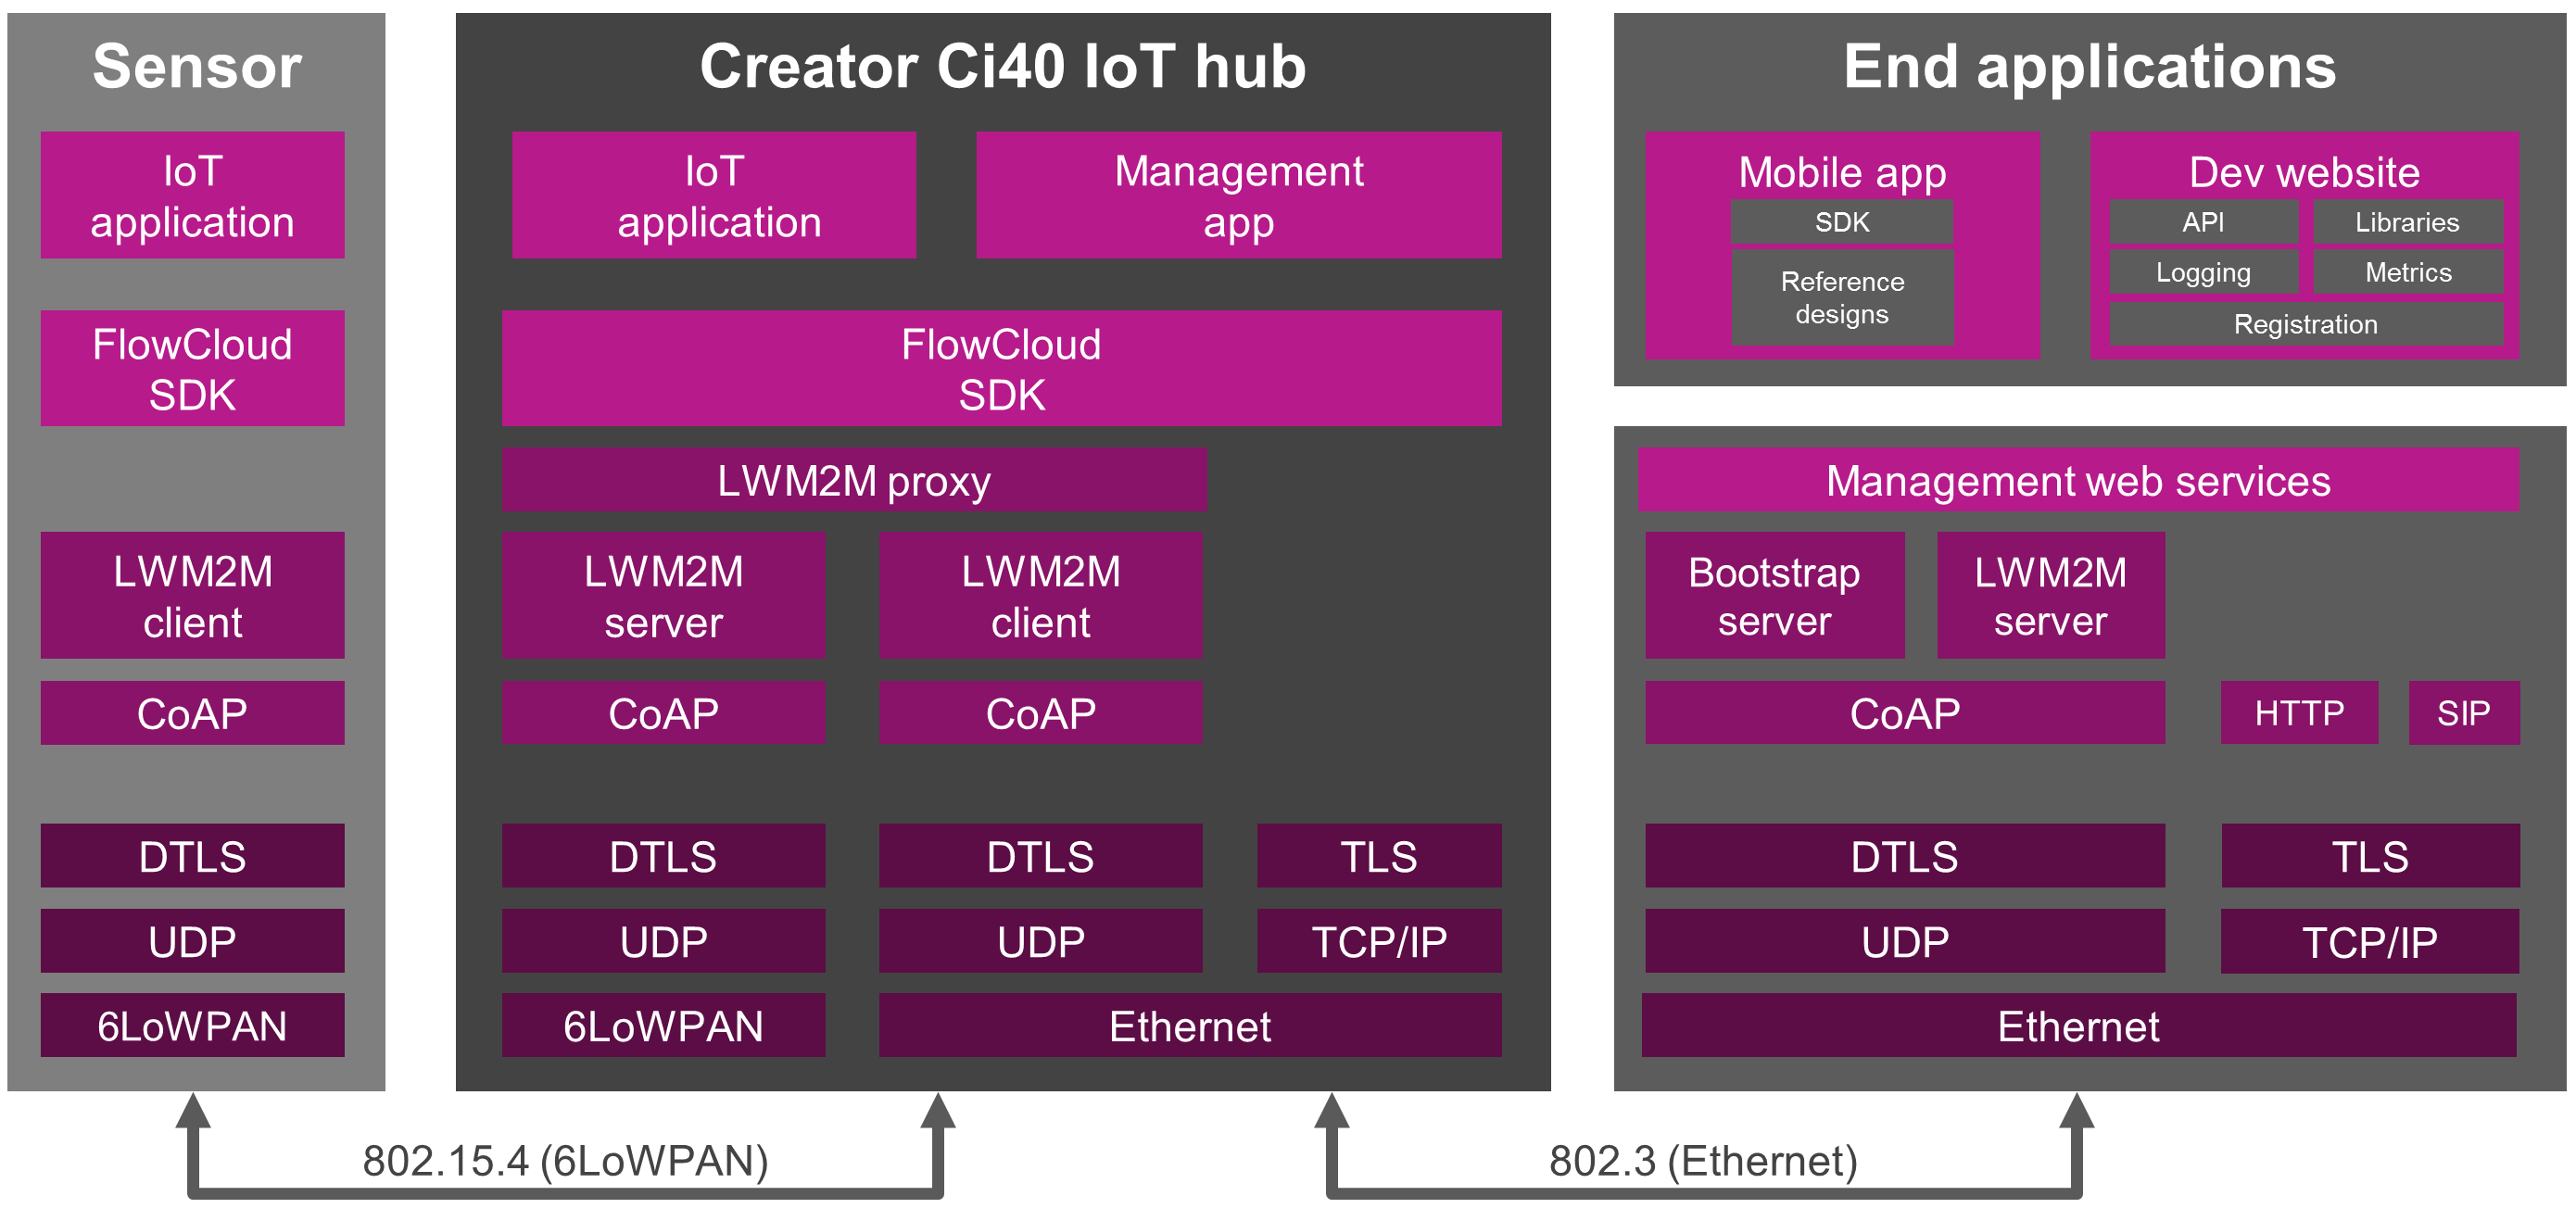 07 - Creator Ci40 IoT kit - open source software stack_2 detail